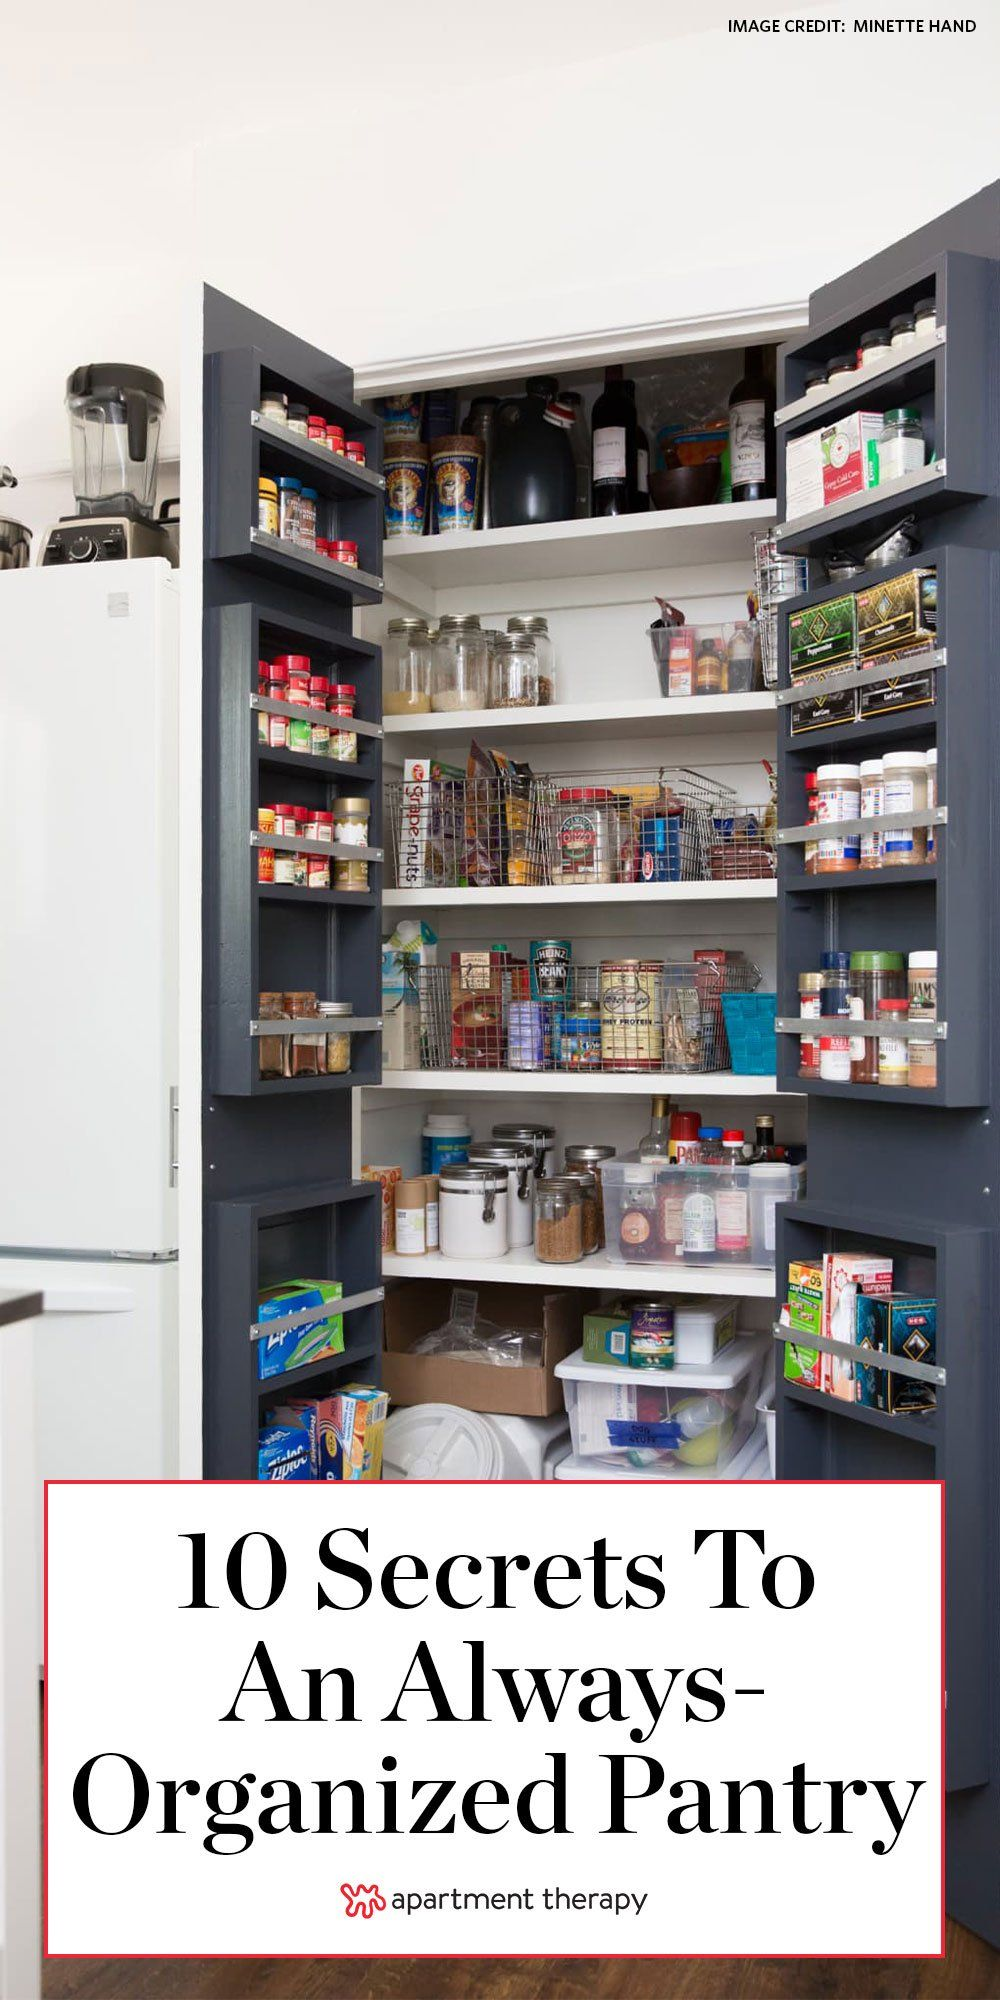 Make a vow to live by these ten guiding principles and enjoy a happy, healthy pantry for years to come. #pantrytips #pantryorganization #organizedpantry #closetorganization #kitchenideas #kitchenorganization #organizinghacks #organizingtips #clutterfreekitchen